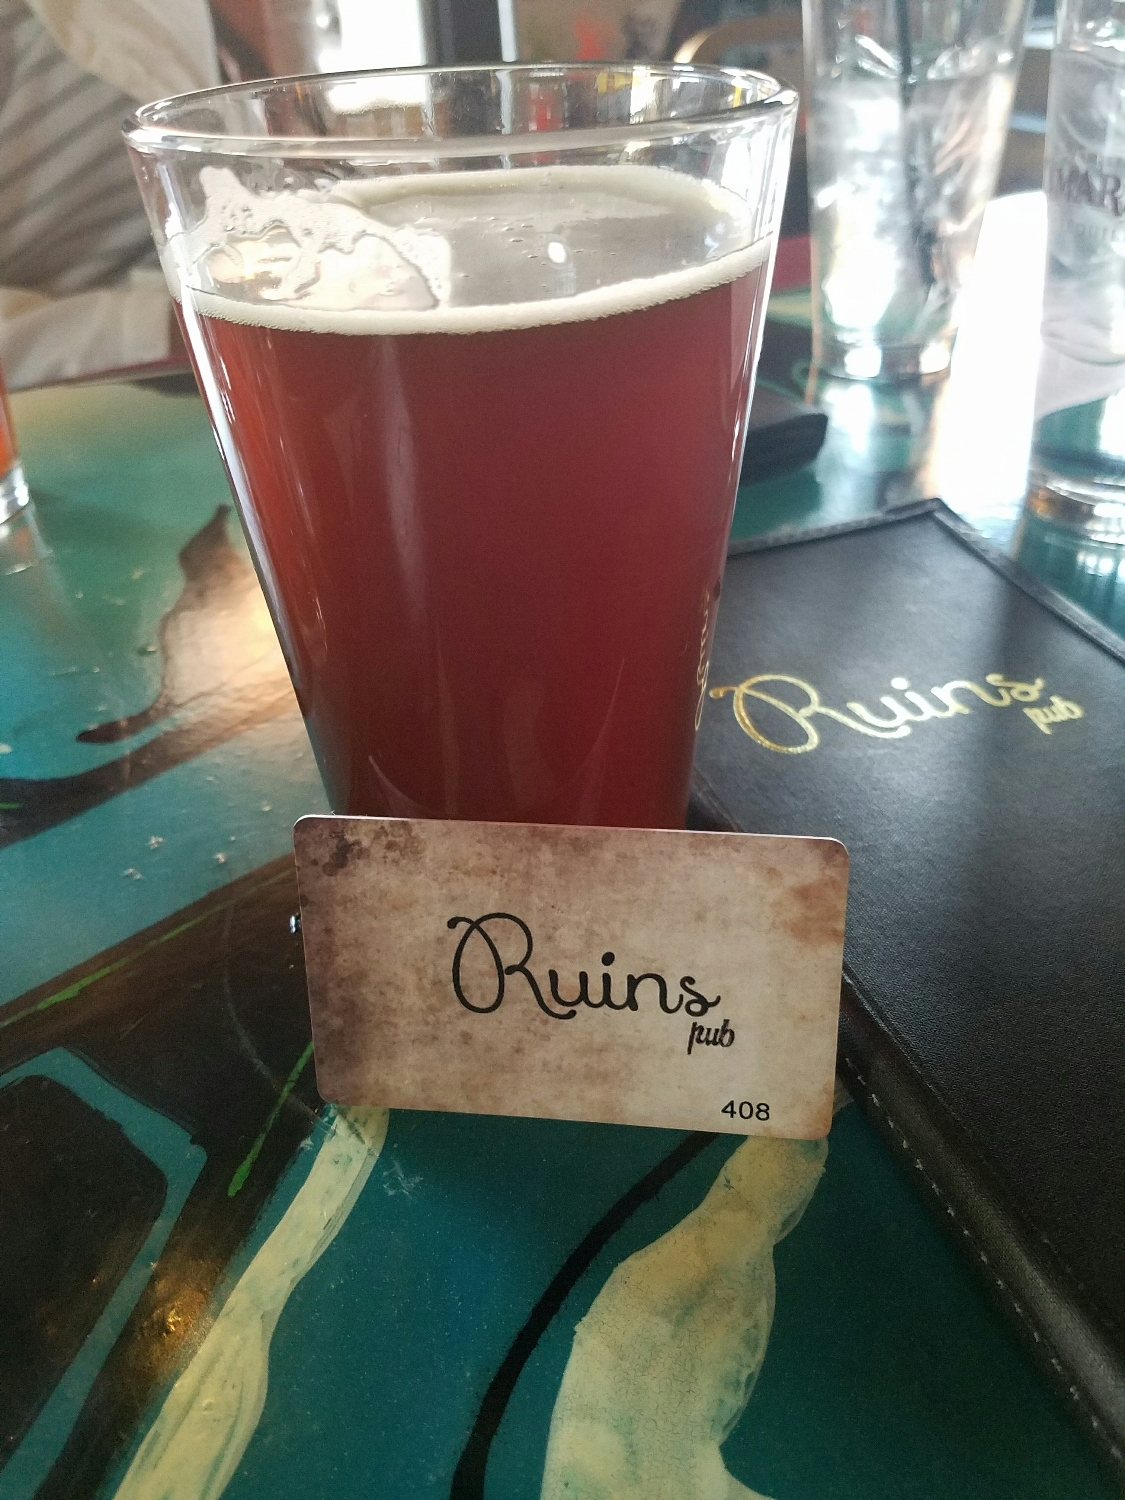 Ruins Pub tap card and delicious beer!